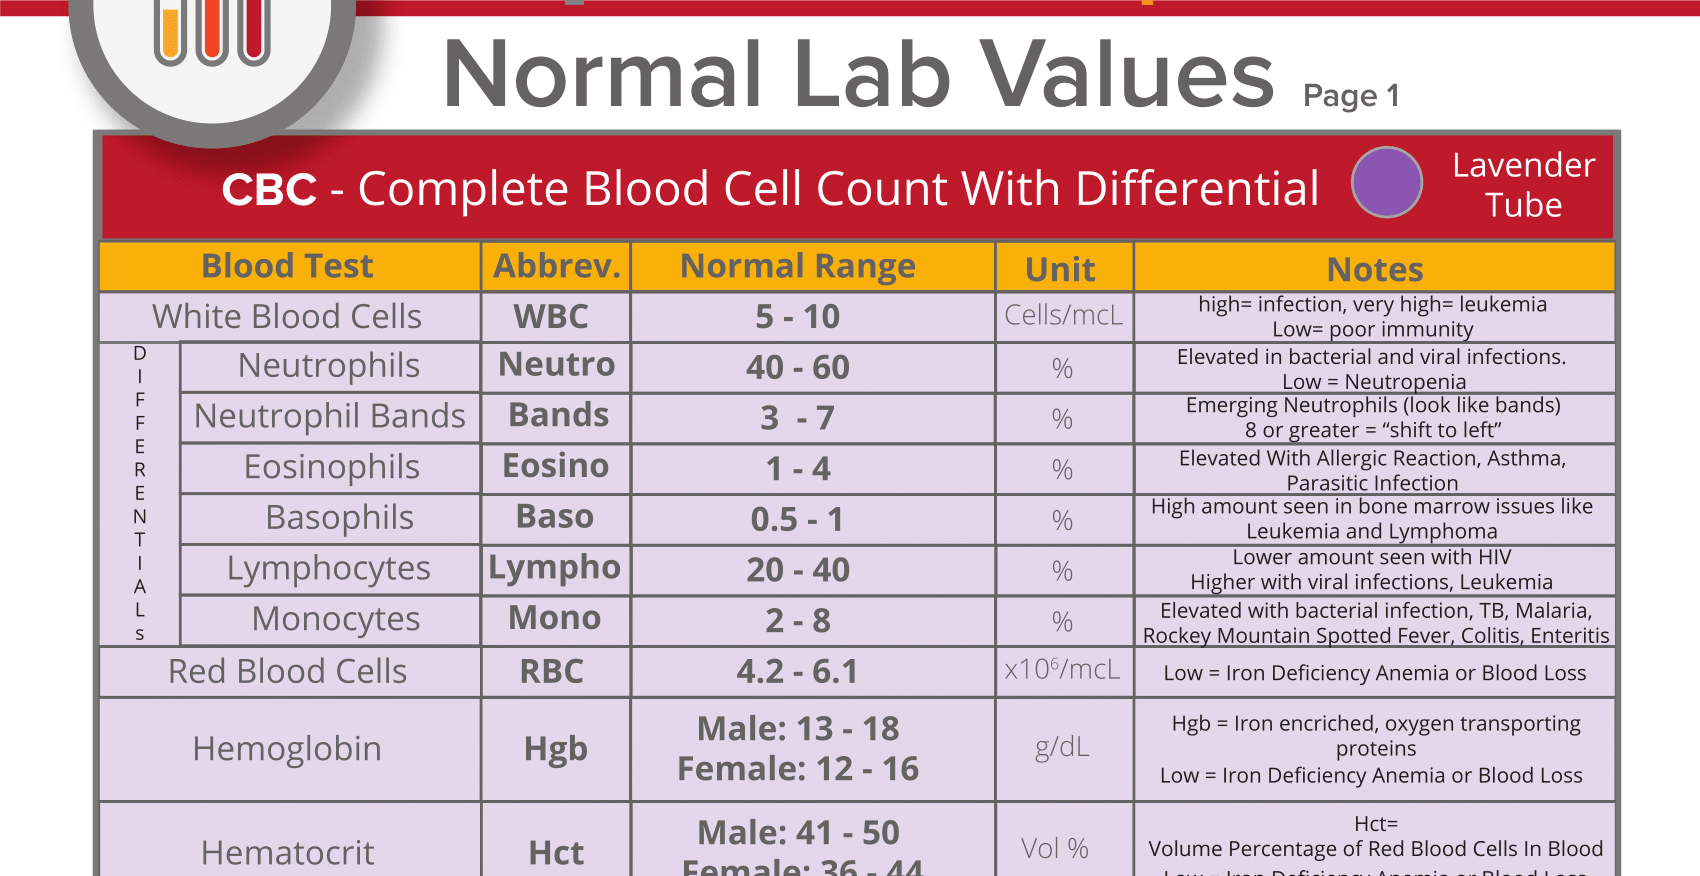 Pediatric Normal Lab Values Interpretation